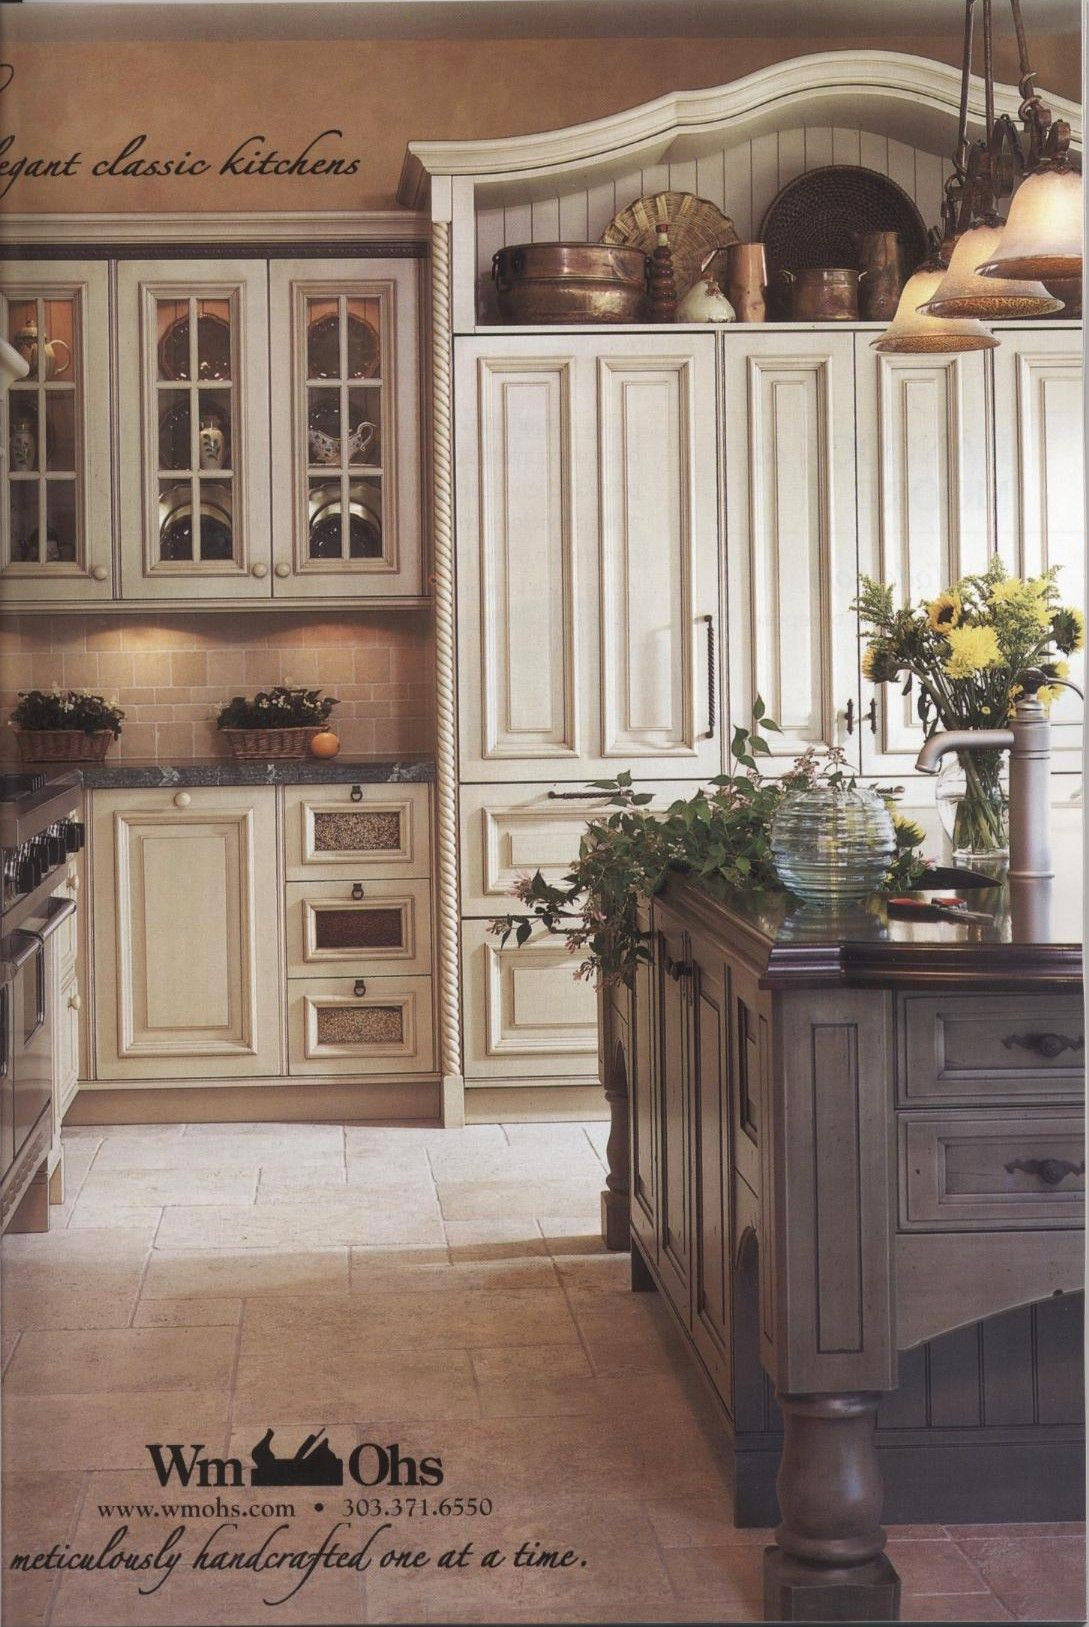 William Ohs Kitchen With Estelle Faucet Country Kitchen Cabinets French Country Kitchen Cabinets Country Kitchen Designs